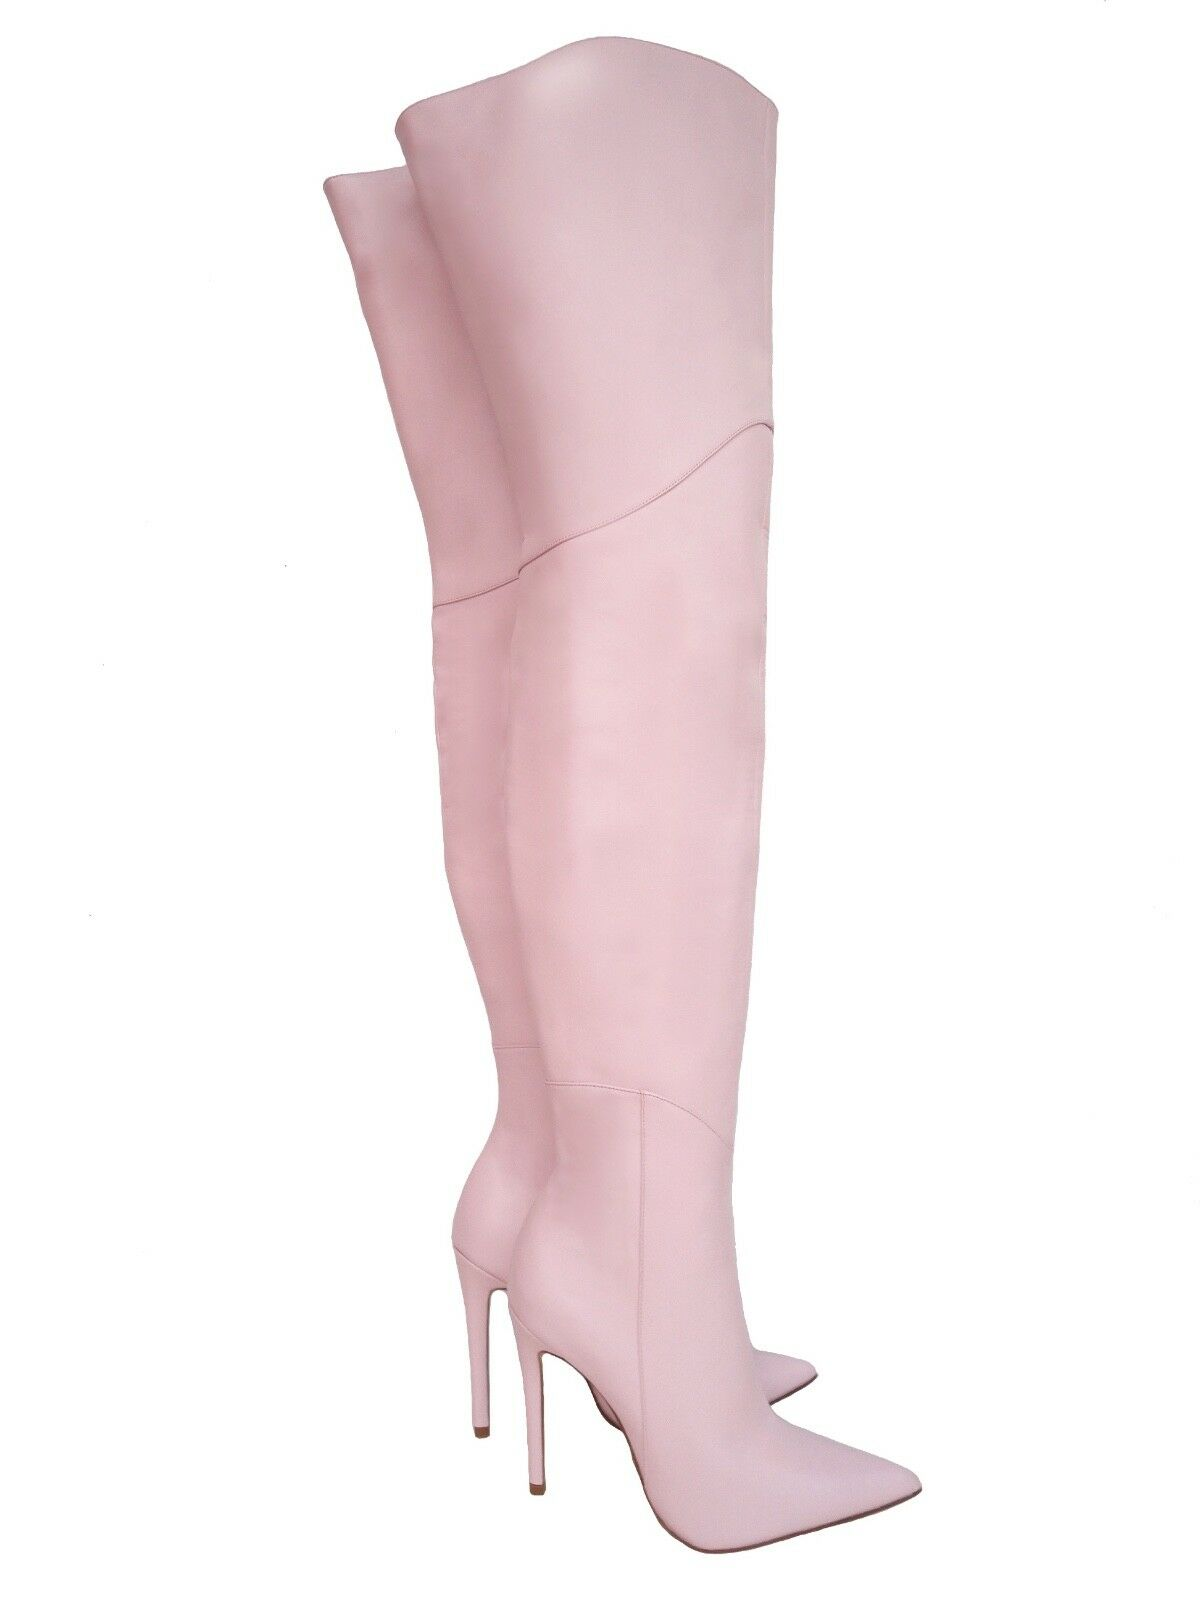 CQ COUTURE CUSTOM OVERKNEE BOOTS STIEFEL BOOTS SHOES LEATHER PINK BABY PINK 37